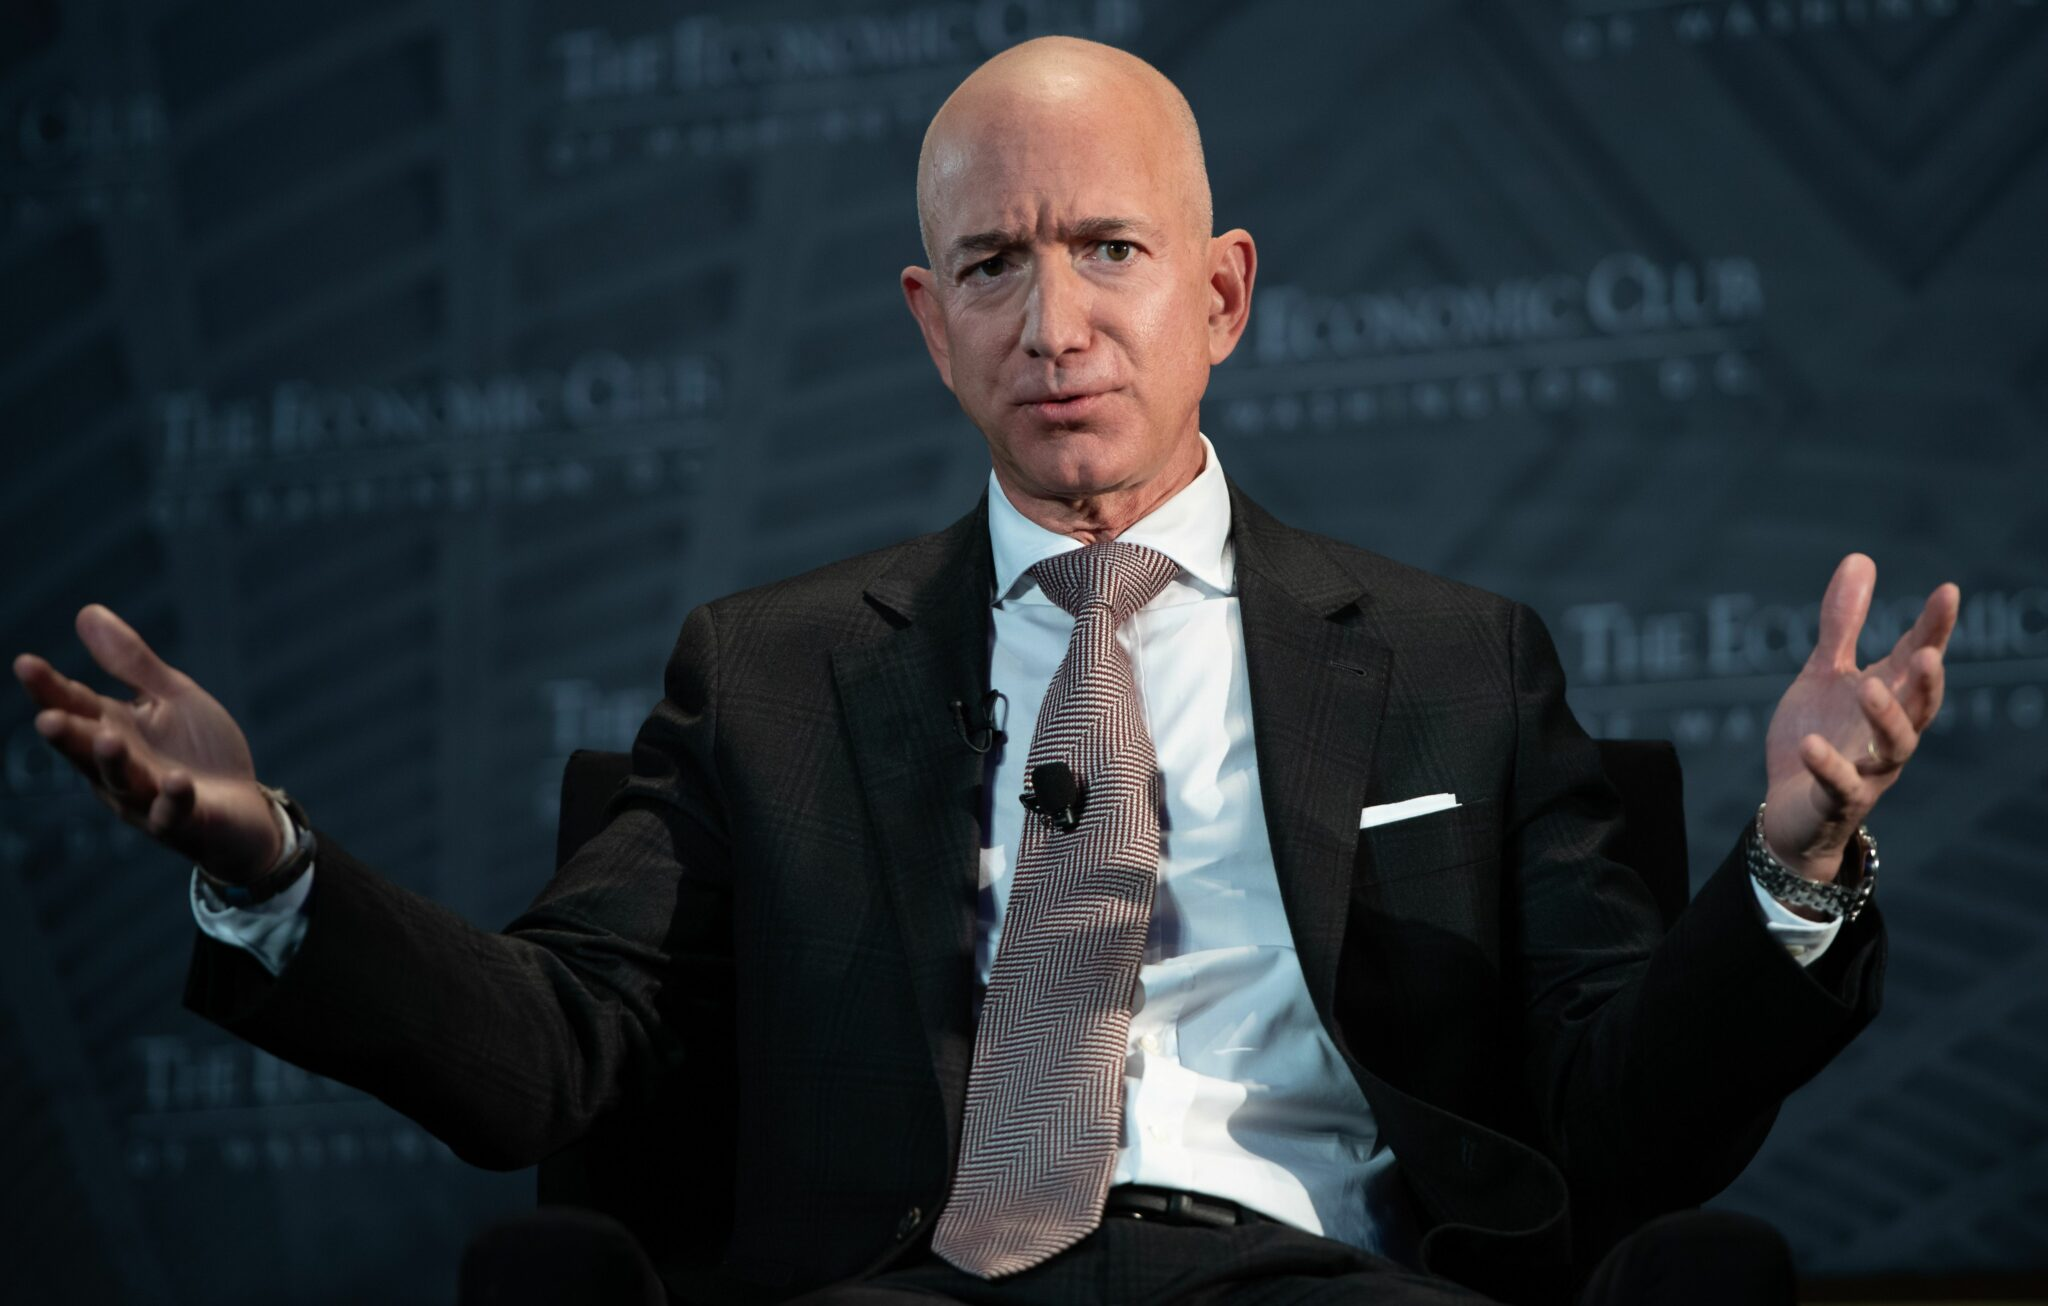 Nude photo used in Jeff Bezos 'extortion' was actually 'from gay escort site'